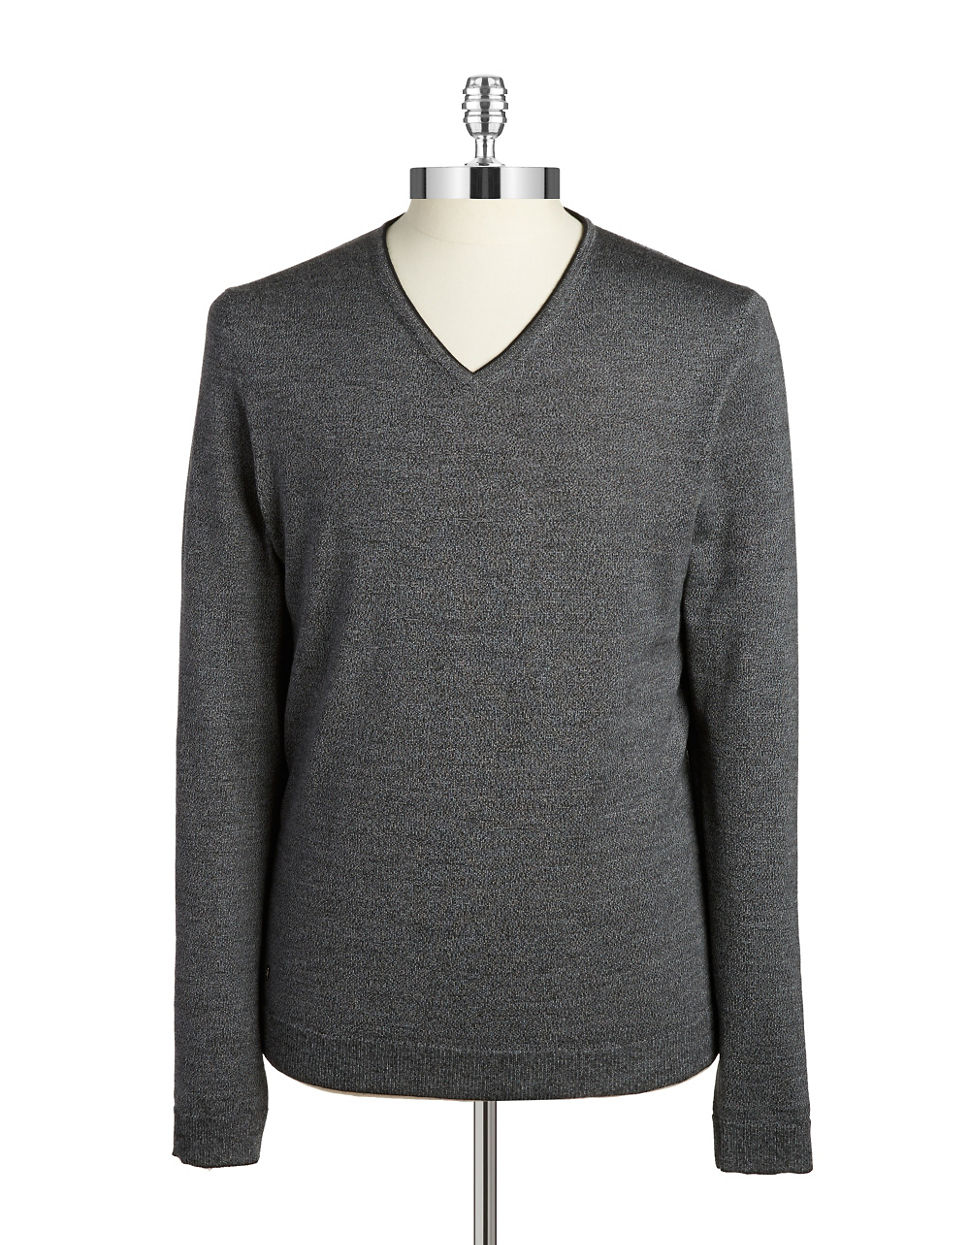 strellson slim fit merino wool sweater in gray for men lyst. Black Bedroom Furniture Sets. Home Design Ideas